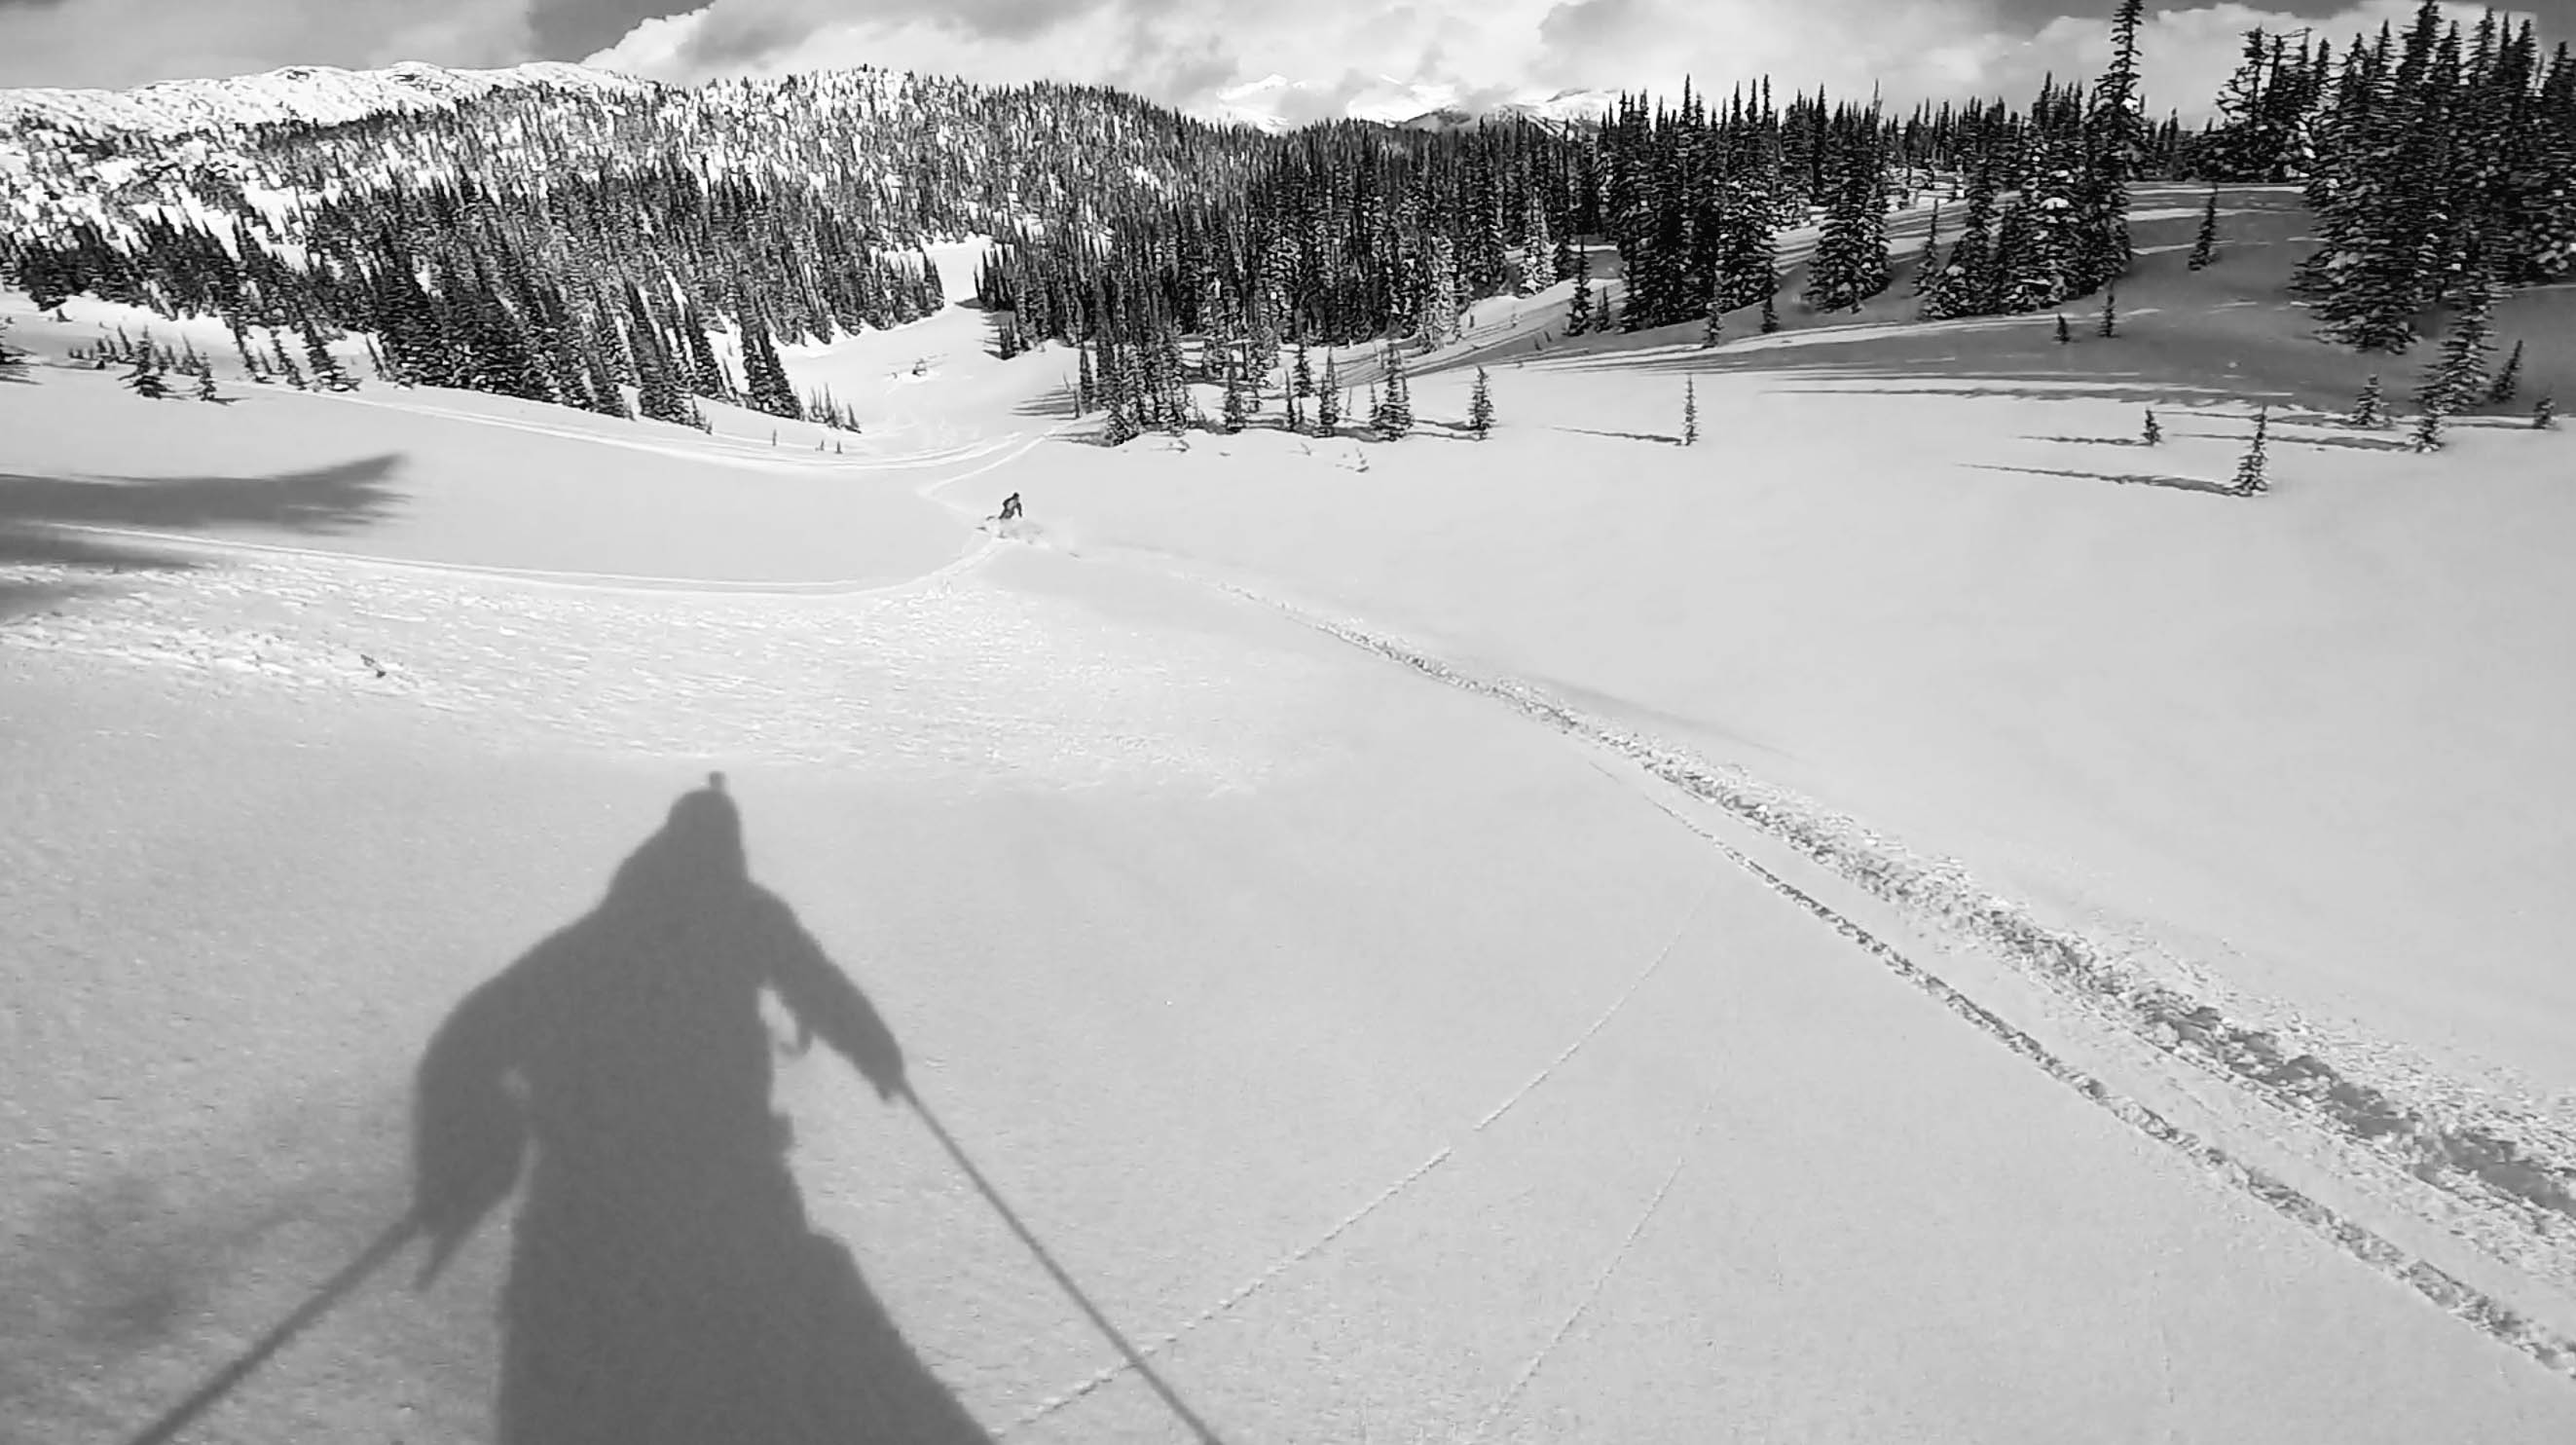 Pure Lines at Silver TIp Heli, Andy Culp's Shadow from the GoPro